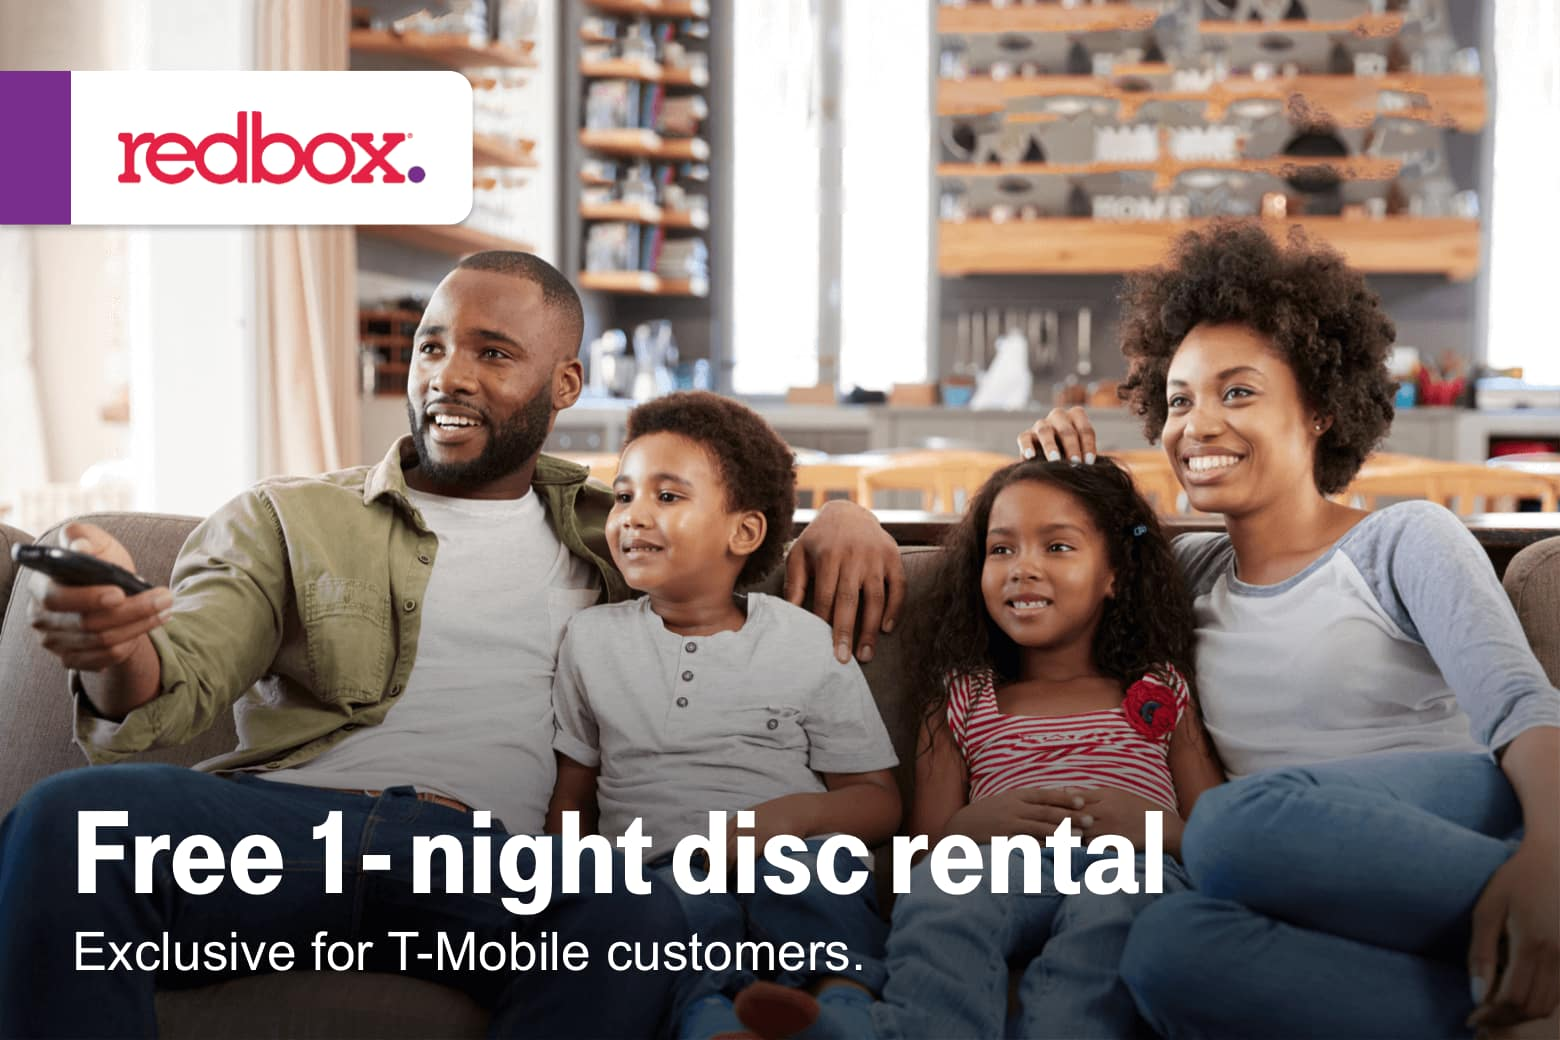 T-Mobile Customers 06/25: Free collapsible water bottle, Free Redbox, Reebok 40% off